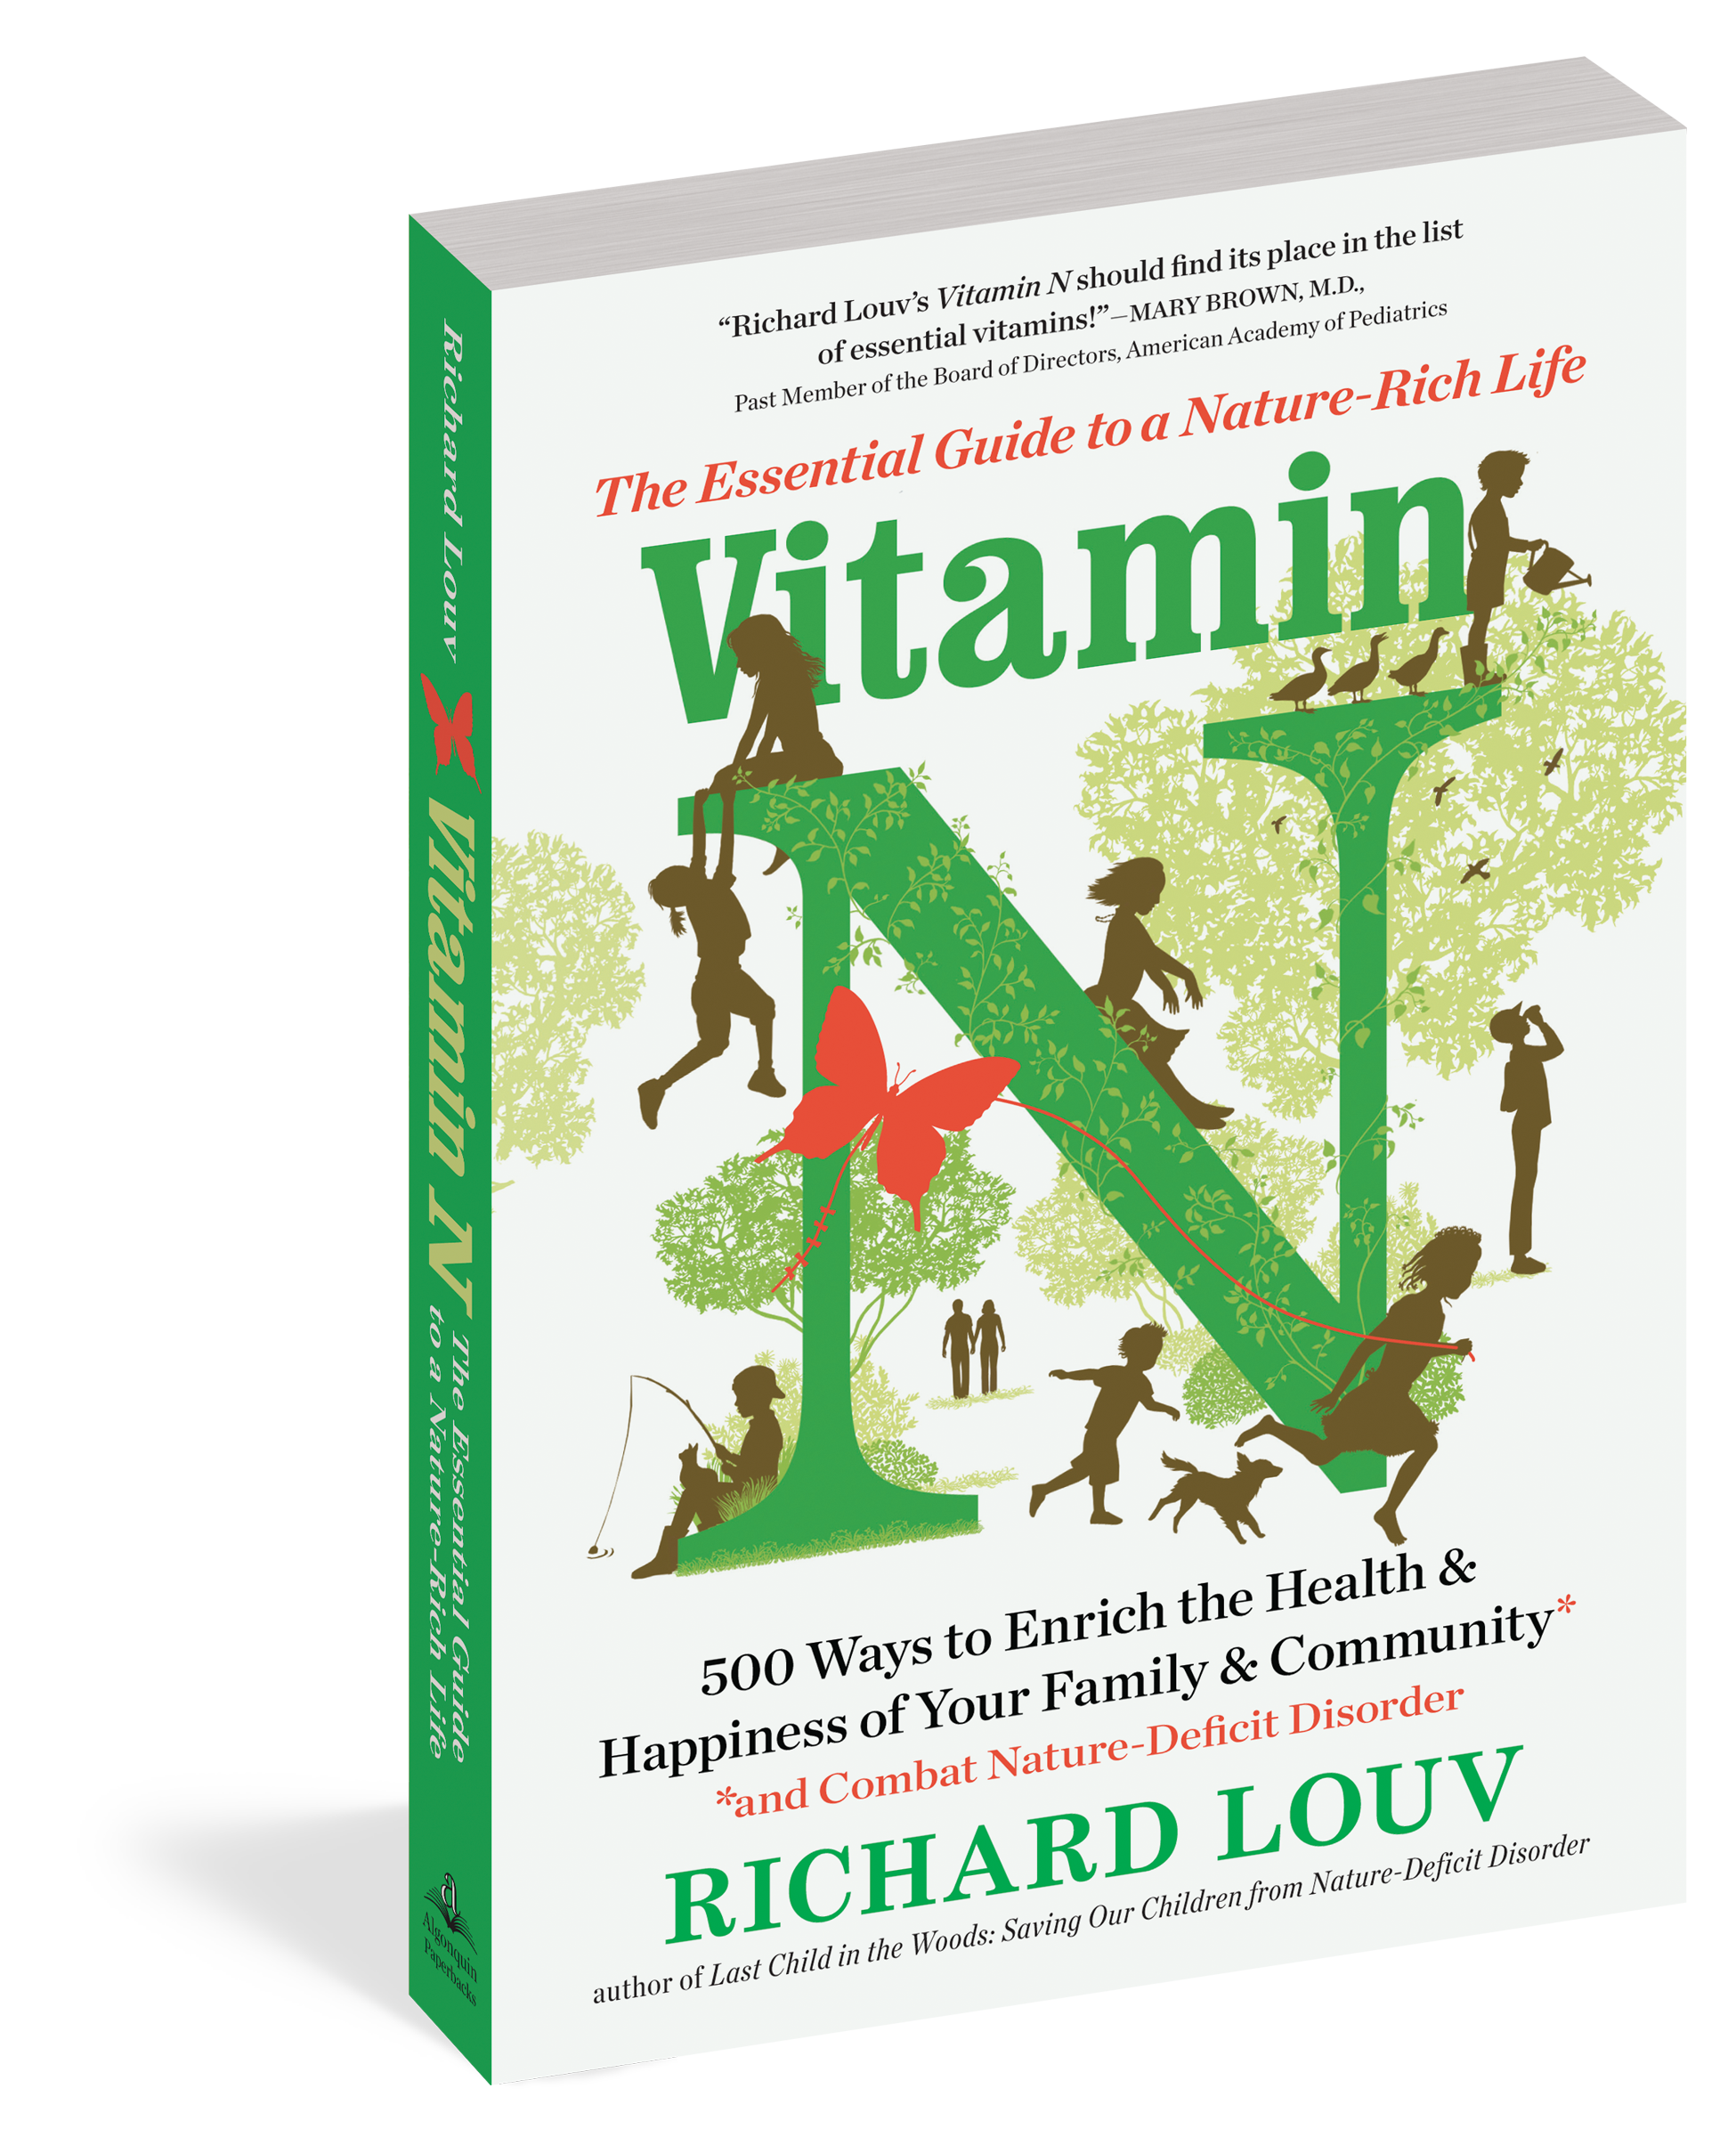 Vitamin N Workman Publishing